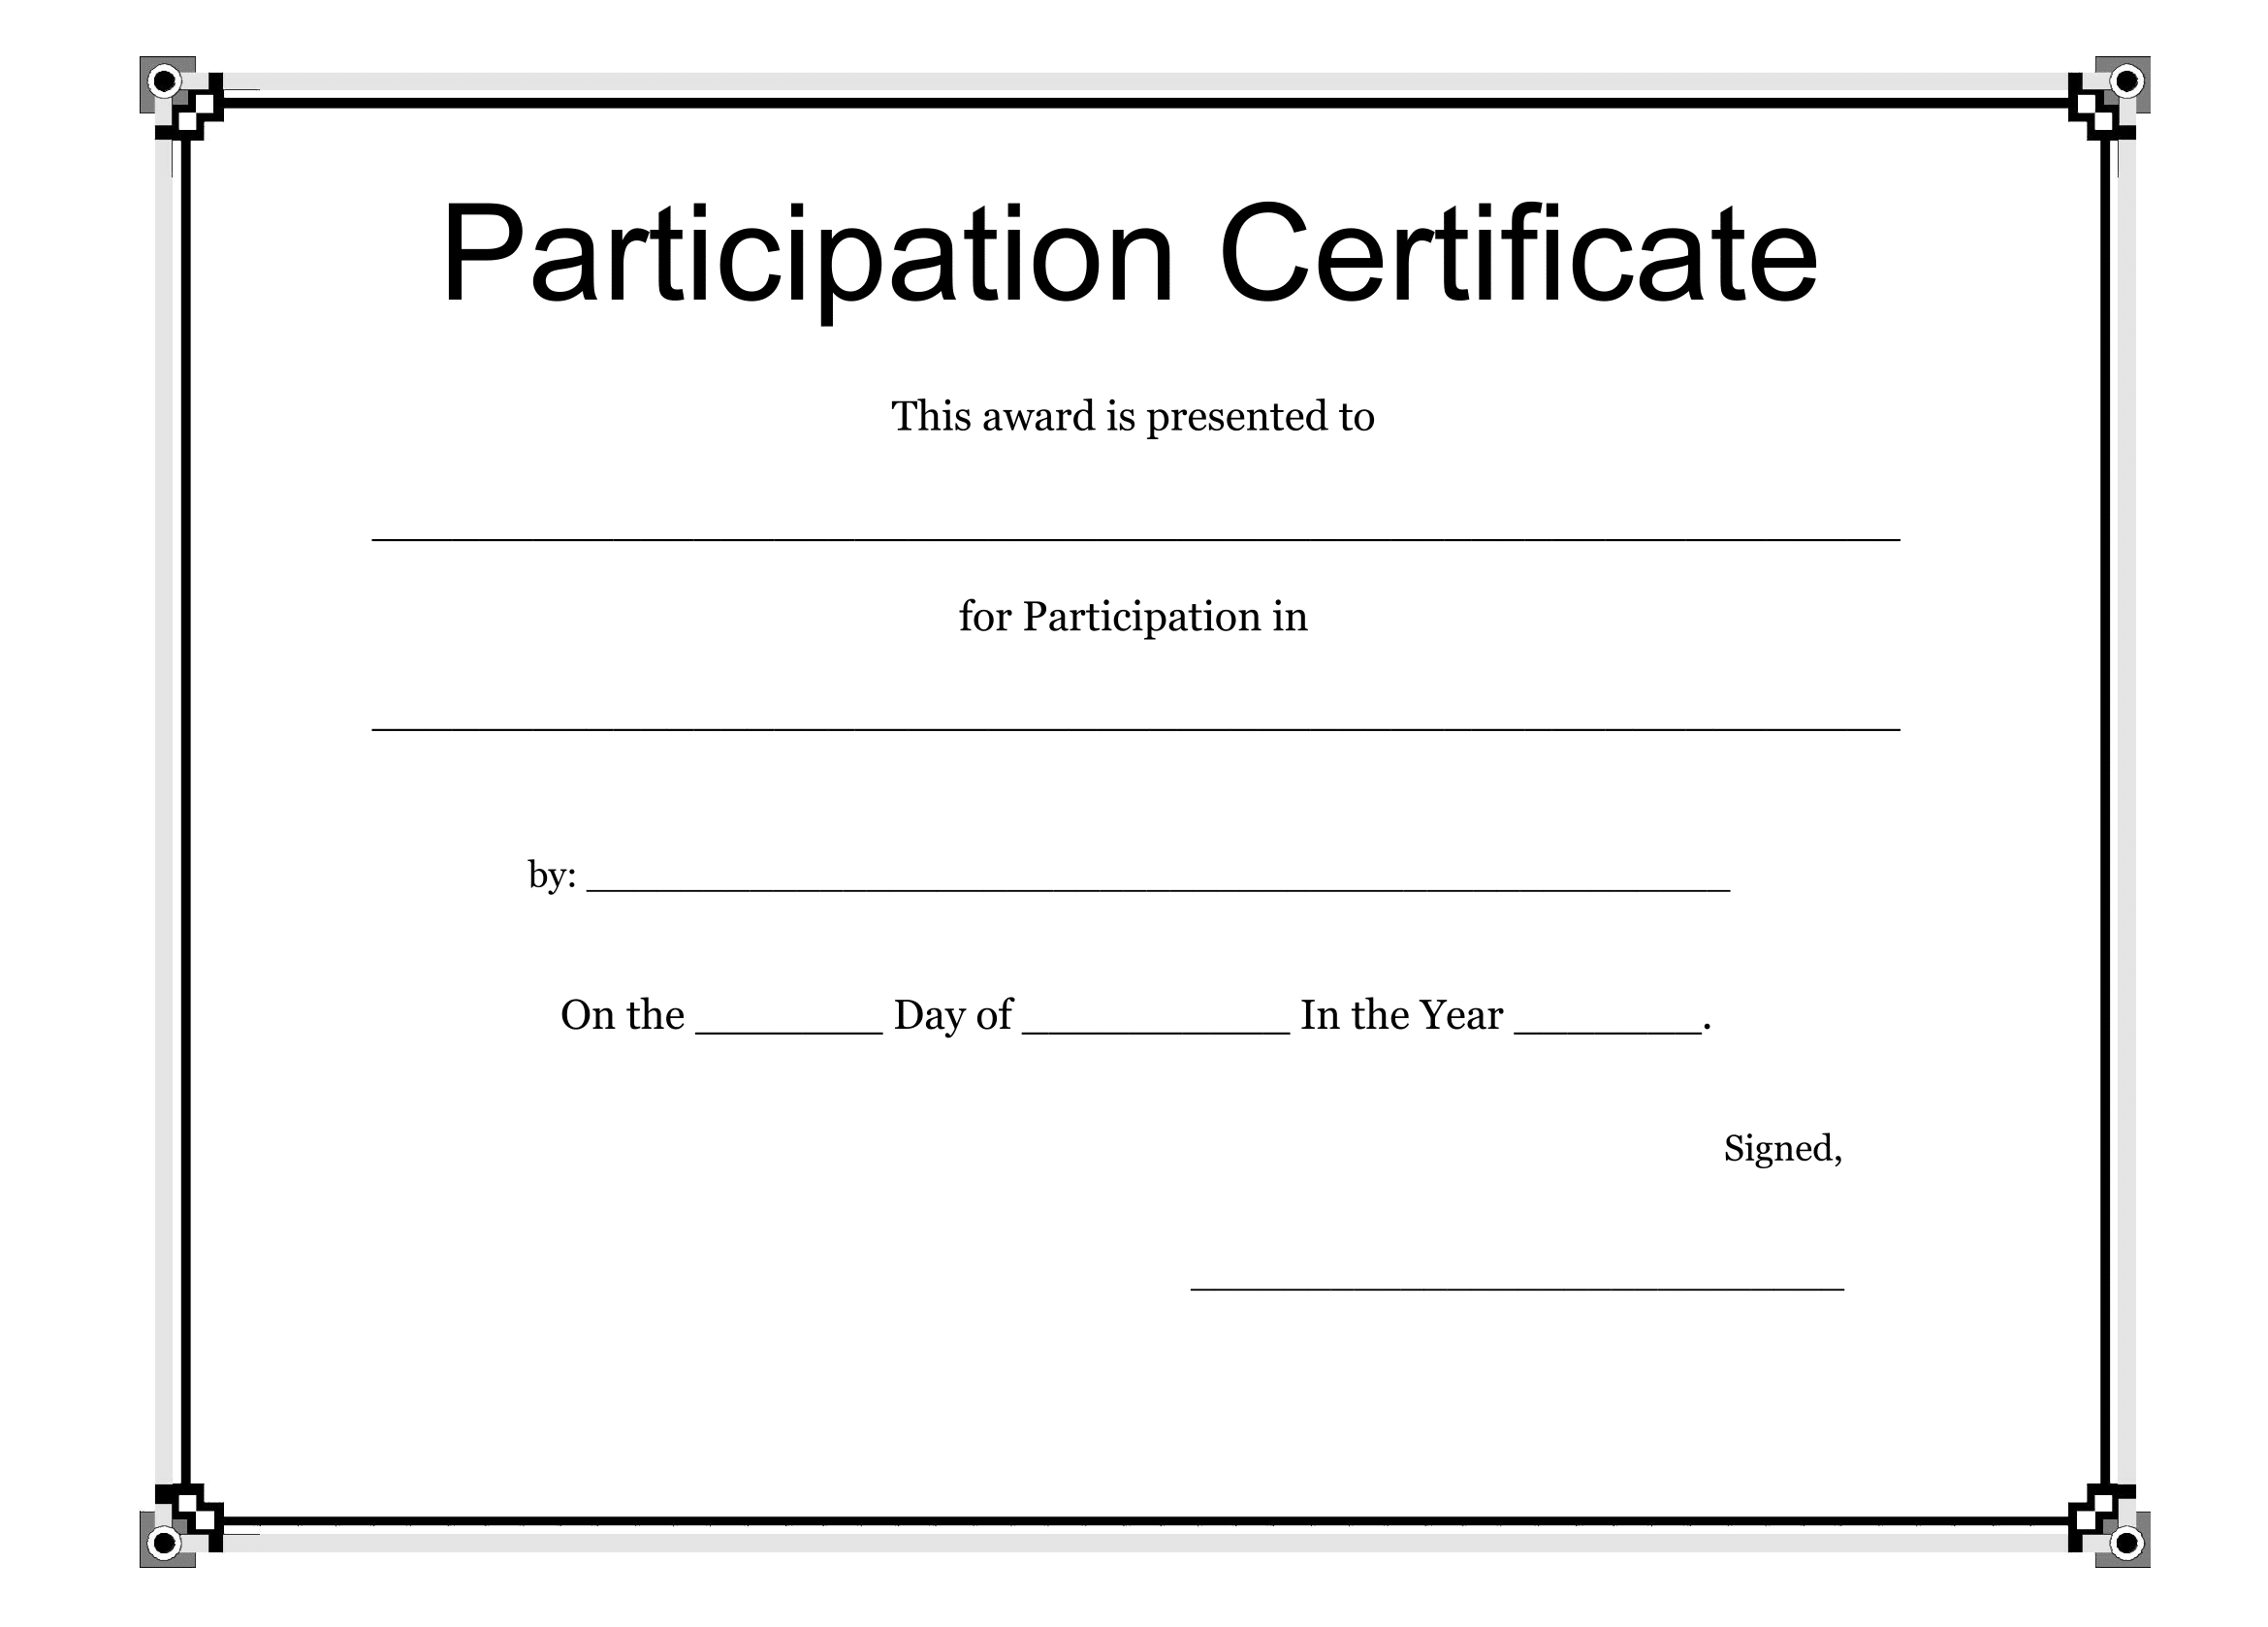 Participation certificate template free download for Certification of participation free template